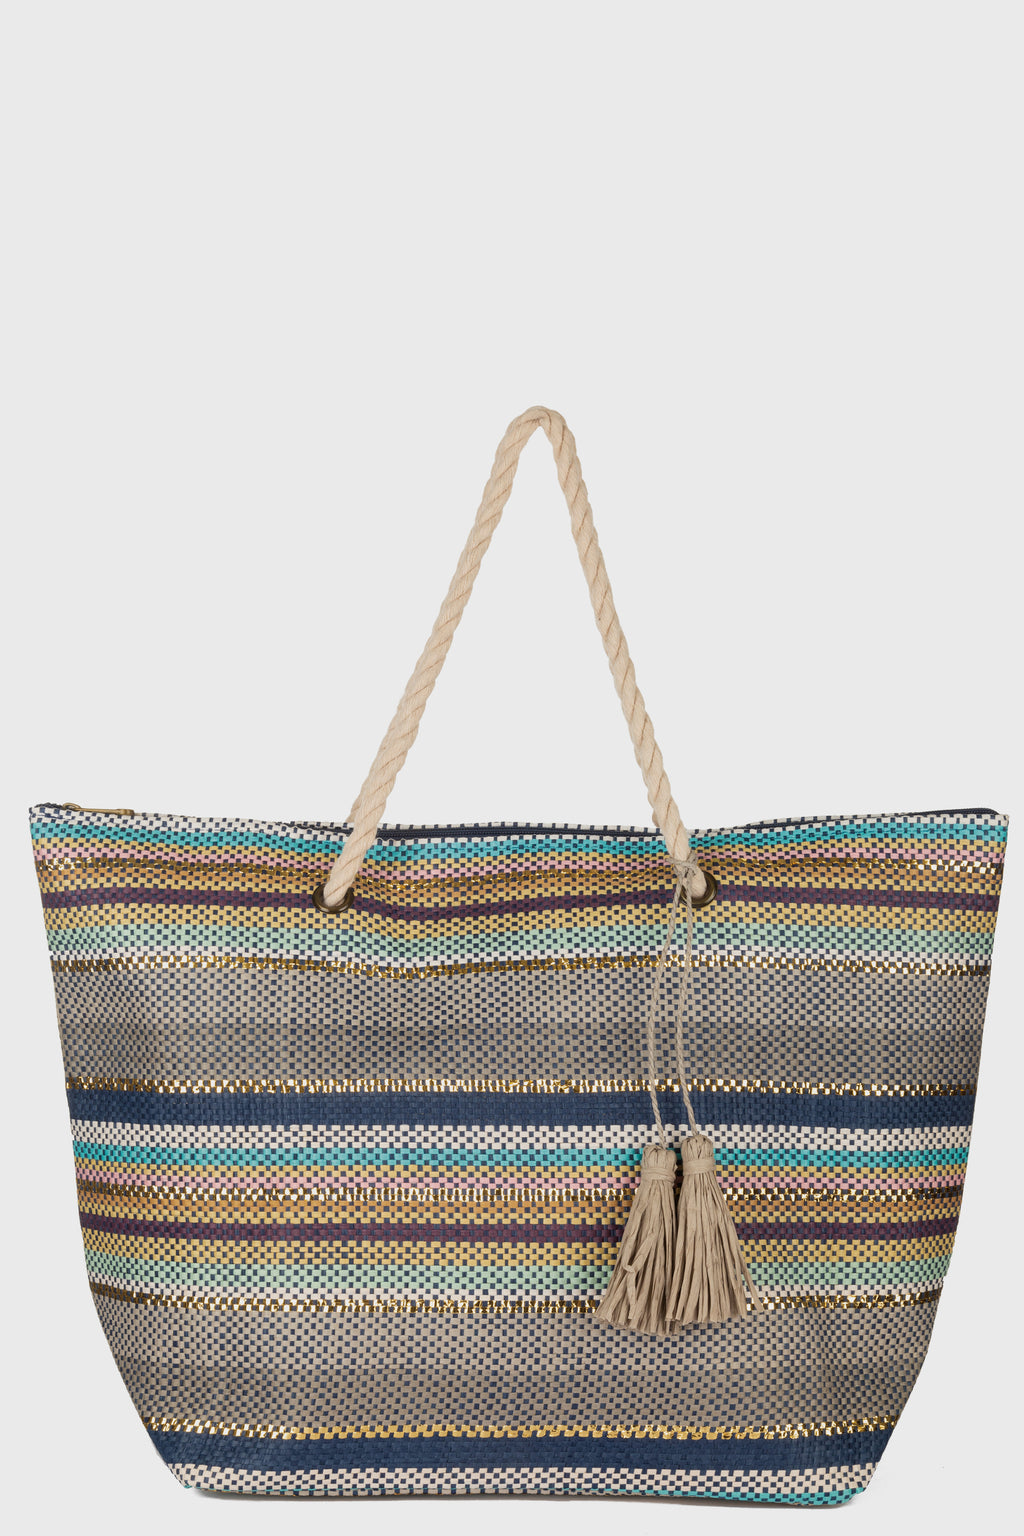 Stripe Beach Tote With Cotton Rope Handles, Paper Tassels & Zip Closure (BSB3756)-TOTE-BaySky